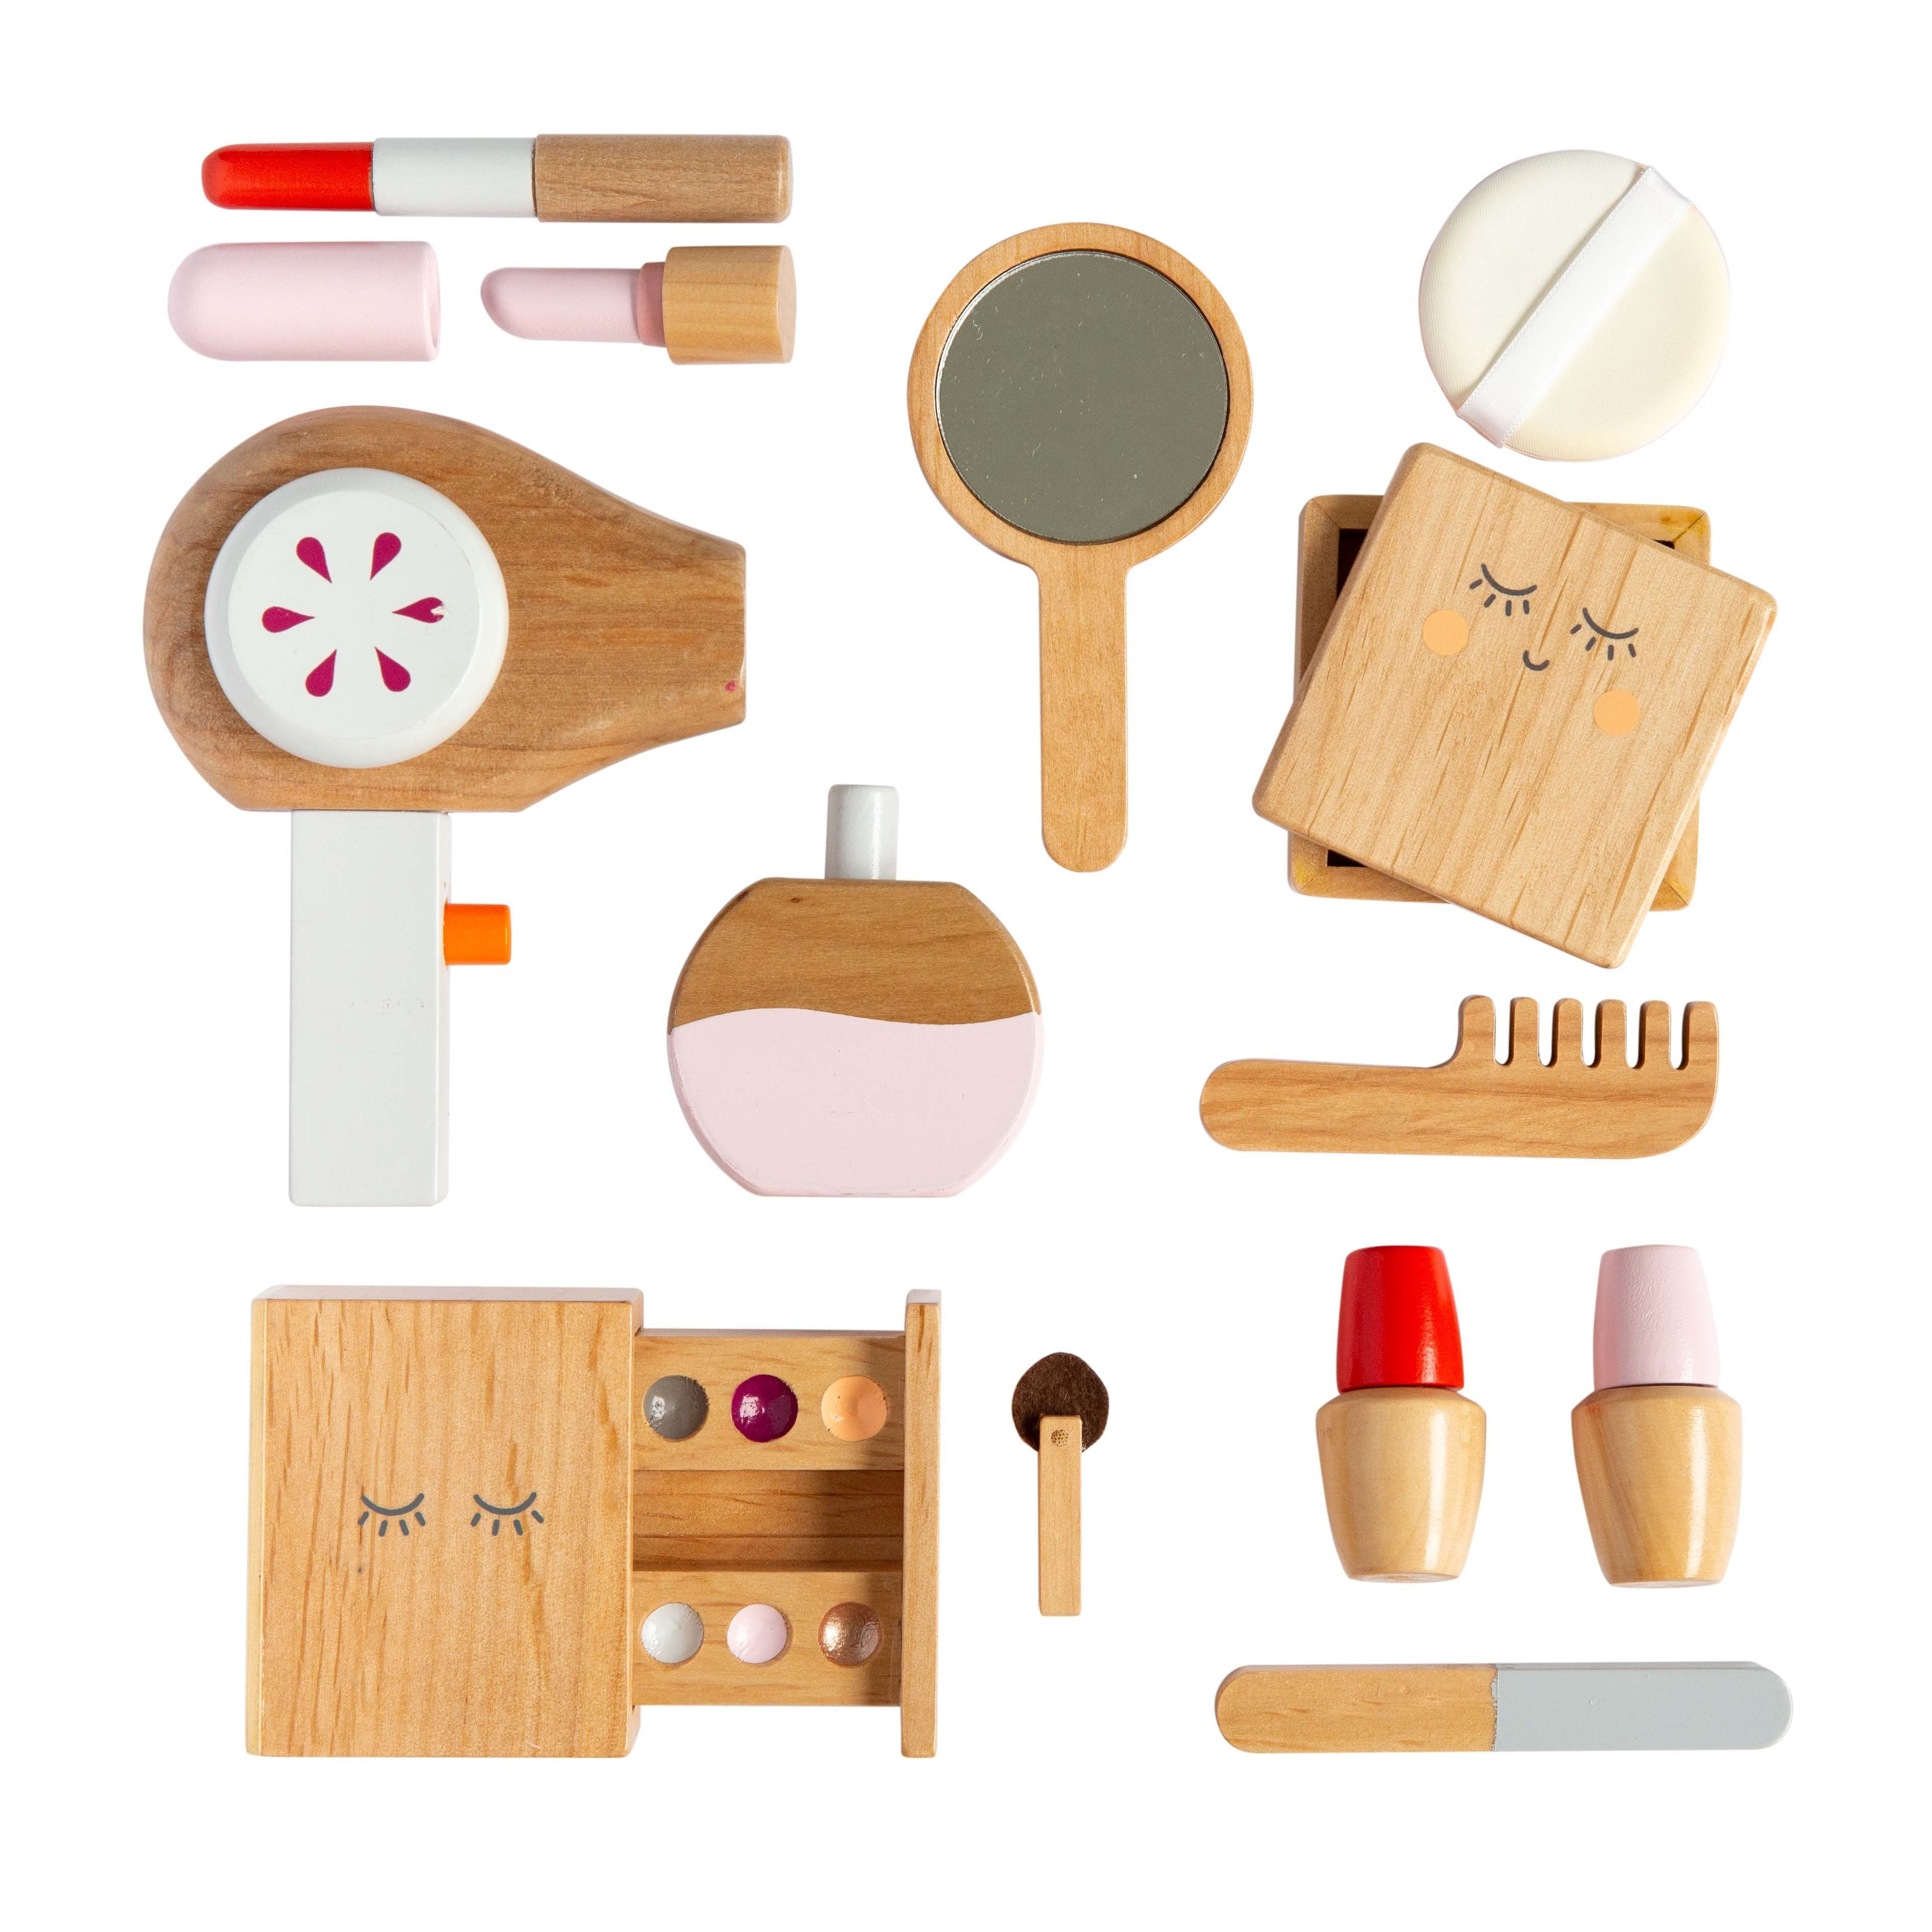 Iconic toy beauty kit Beauty kit, Toys for girls, How